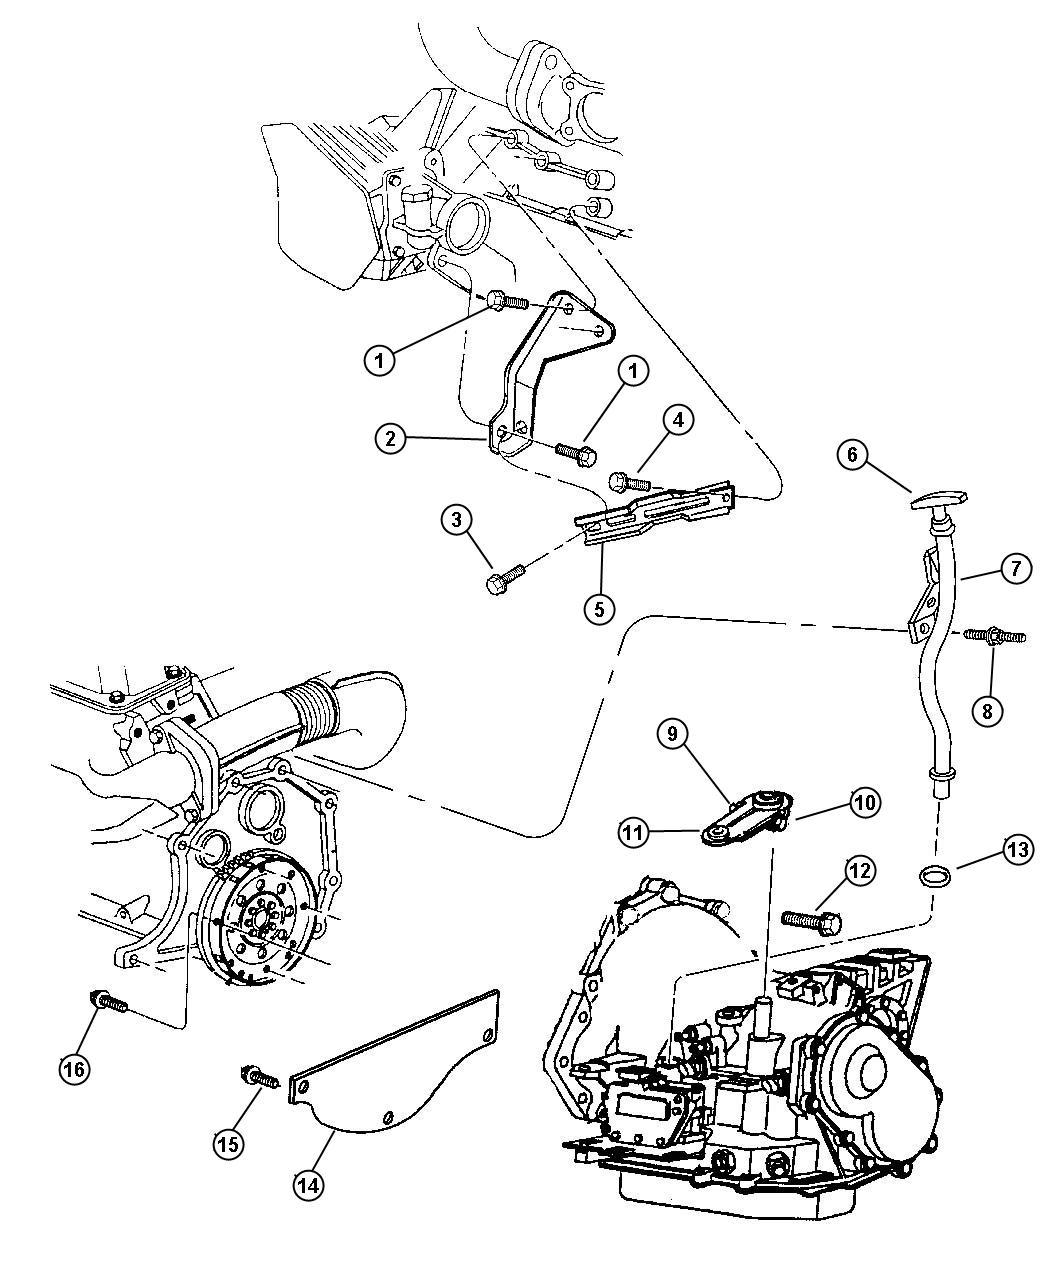 Plymouth Grand Voyager Transaxle Mounting And Misc Parts